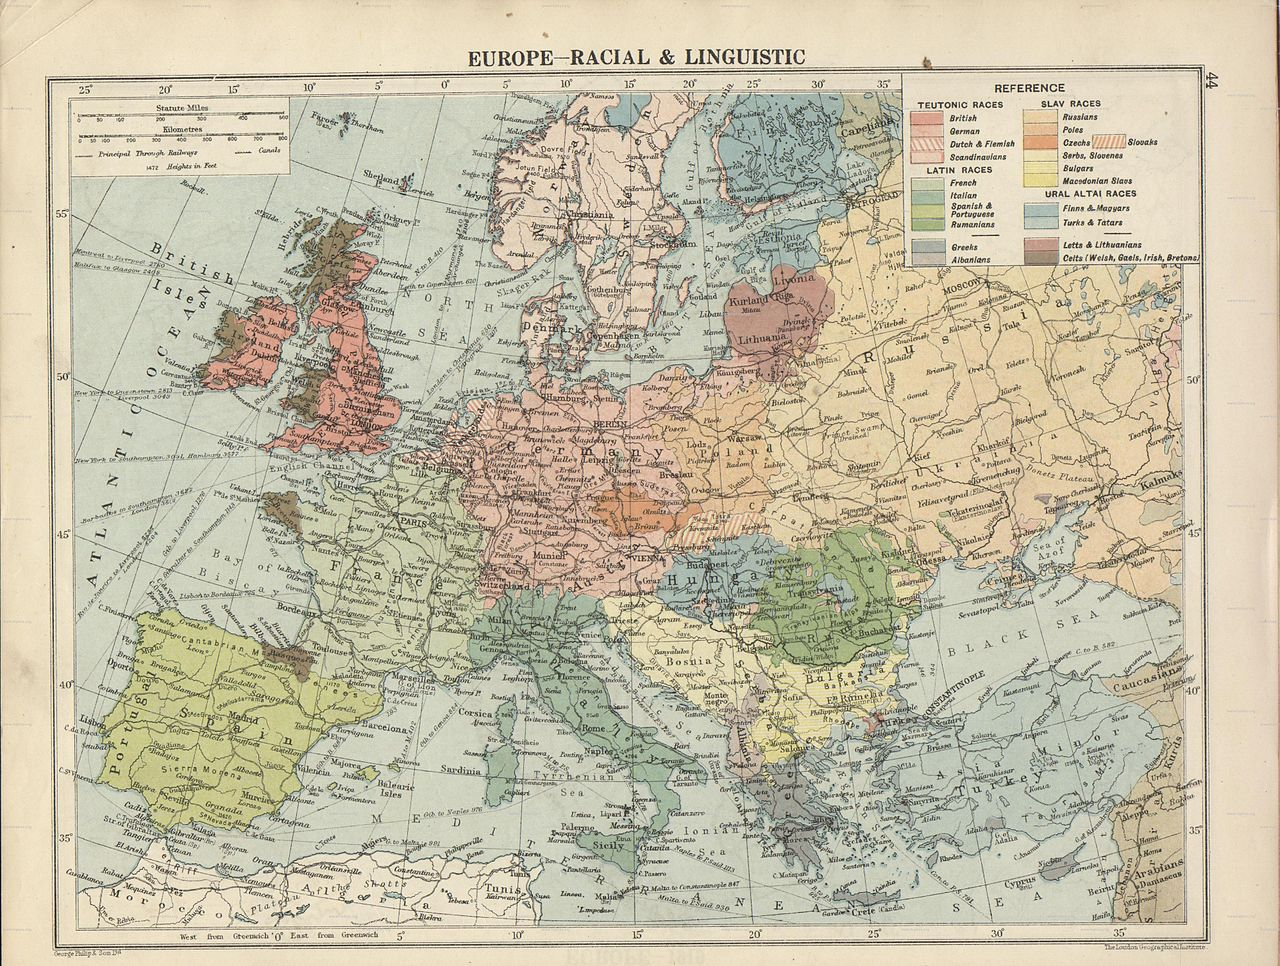 London Atlas Map.File London Geographical Institute The Peoples Atlas 1920 Europe